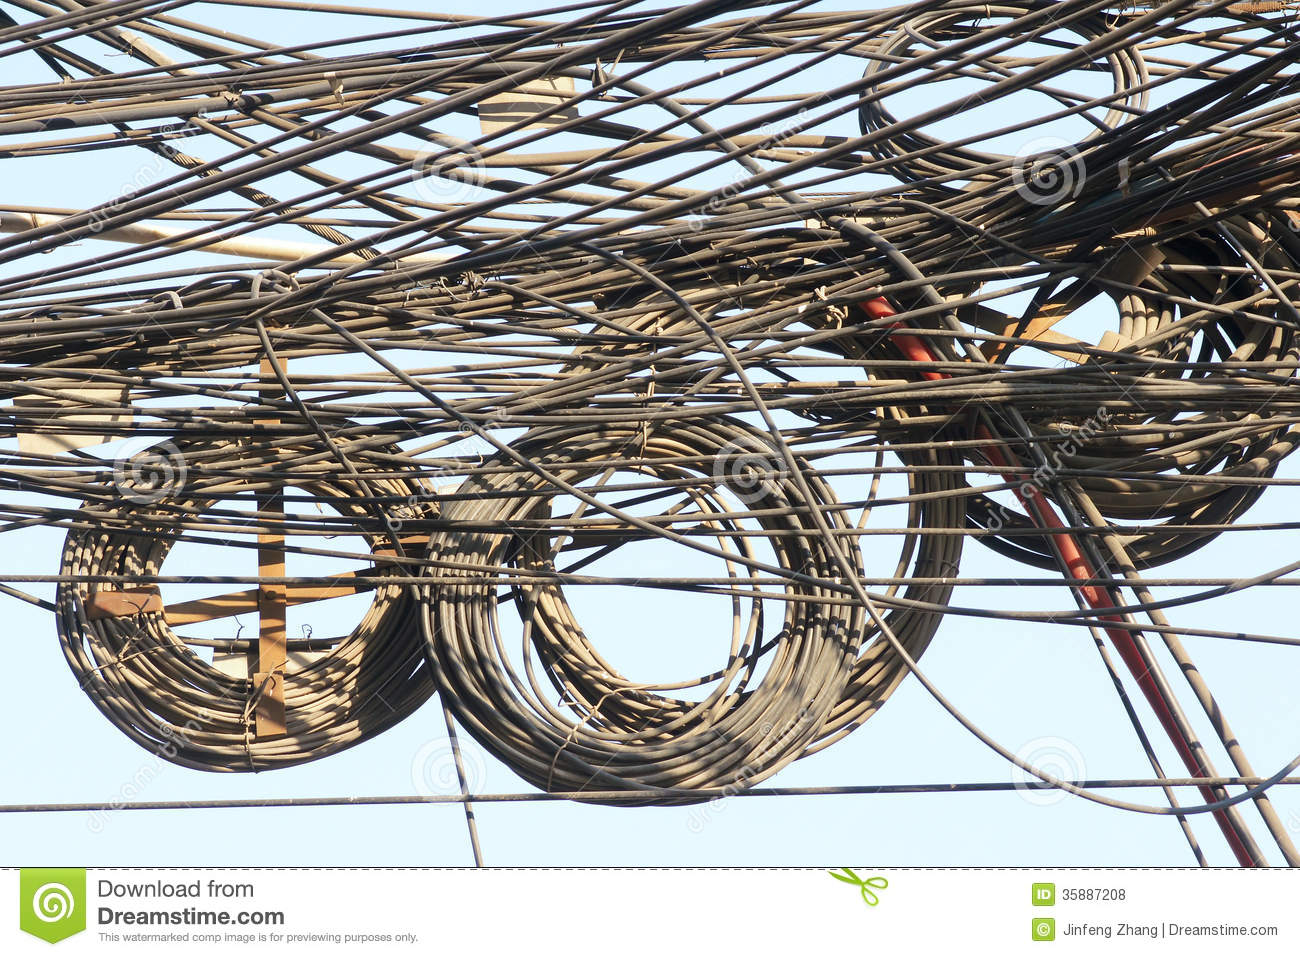 Messy wires stock photo. Image of bind, intricate, mess - 35887208